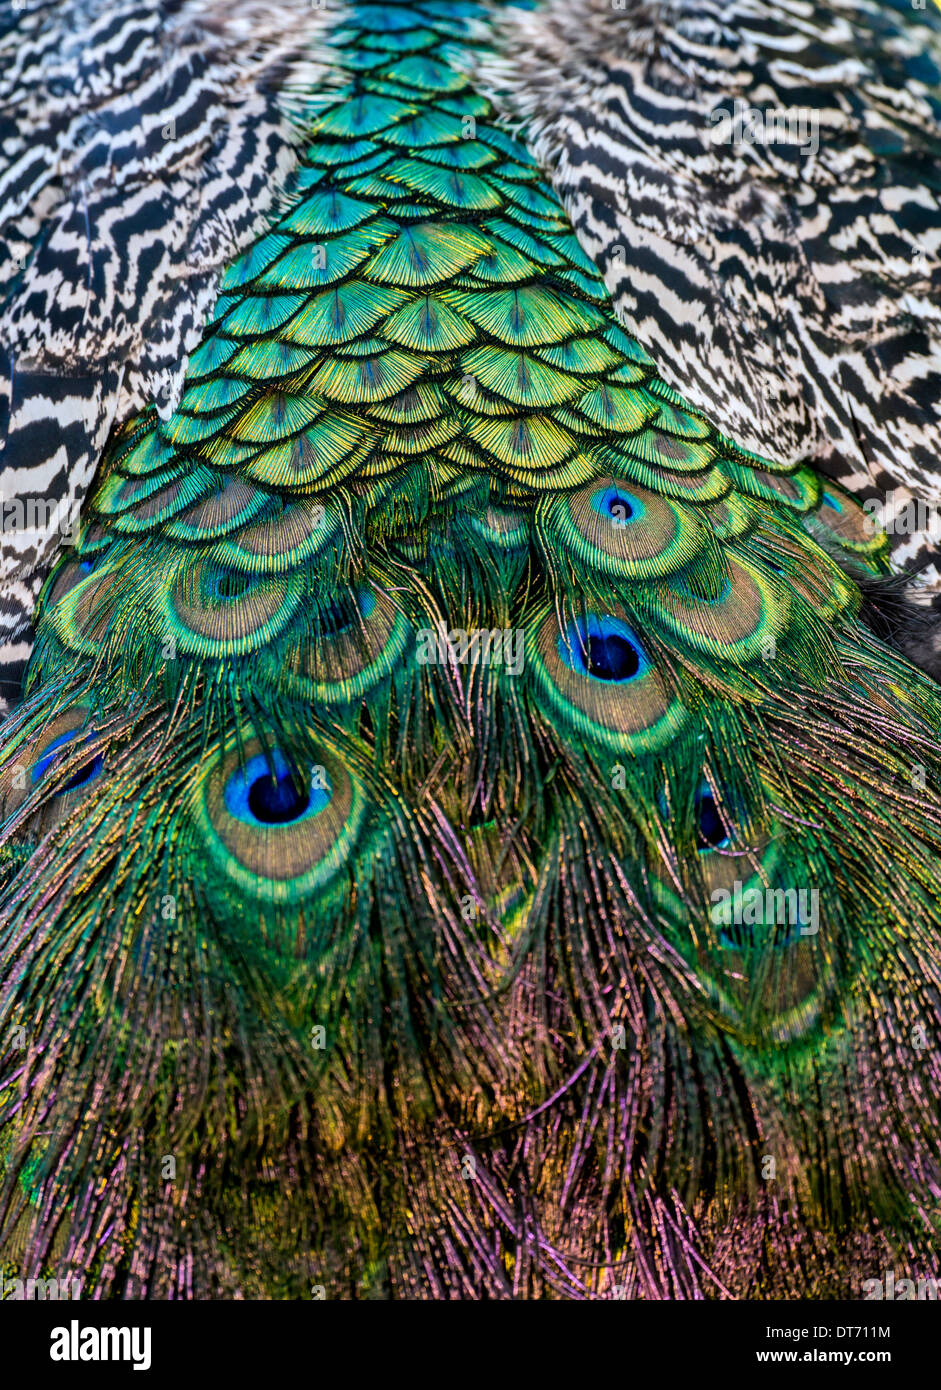 Peafowl are two Asiatic and one African species of flying bird in the genus Pavo of the pheasant family, Phasianidae - Stock Image